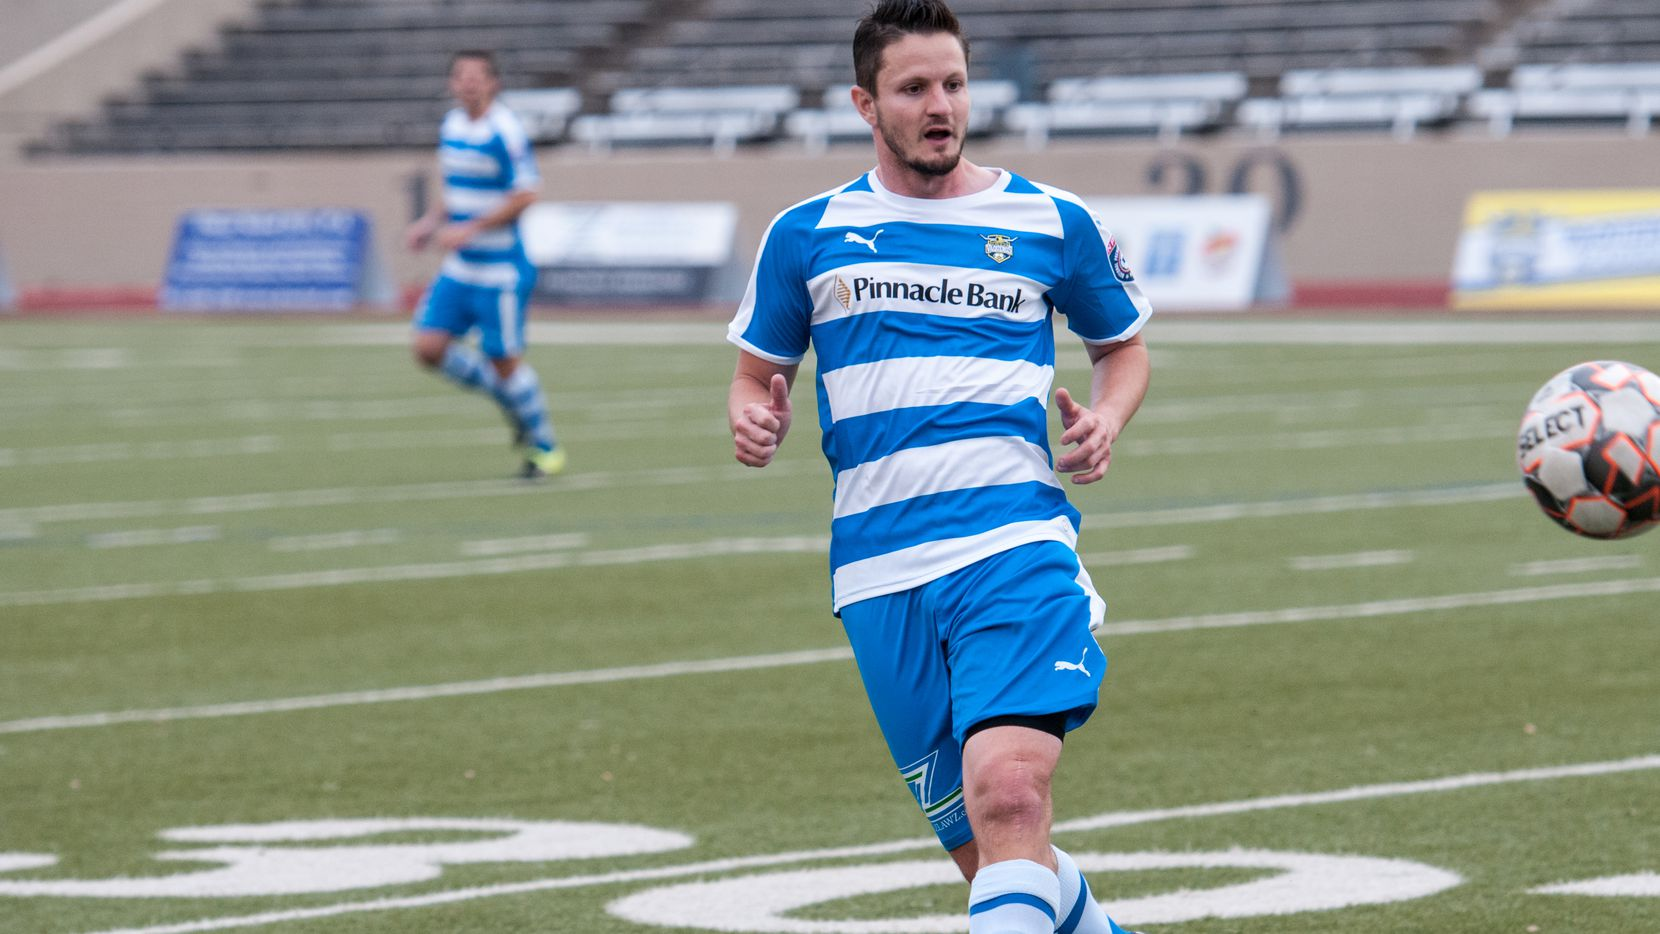 Cameron Brown of the Fort Worth Vaqueros.